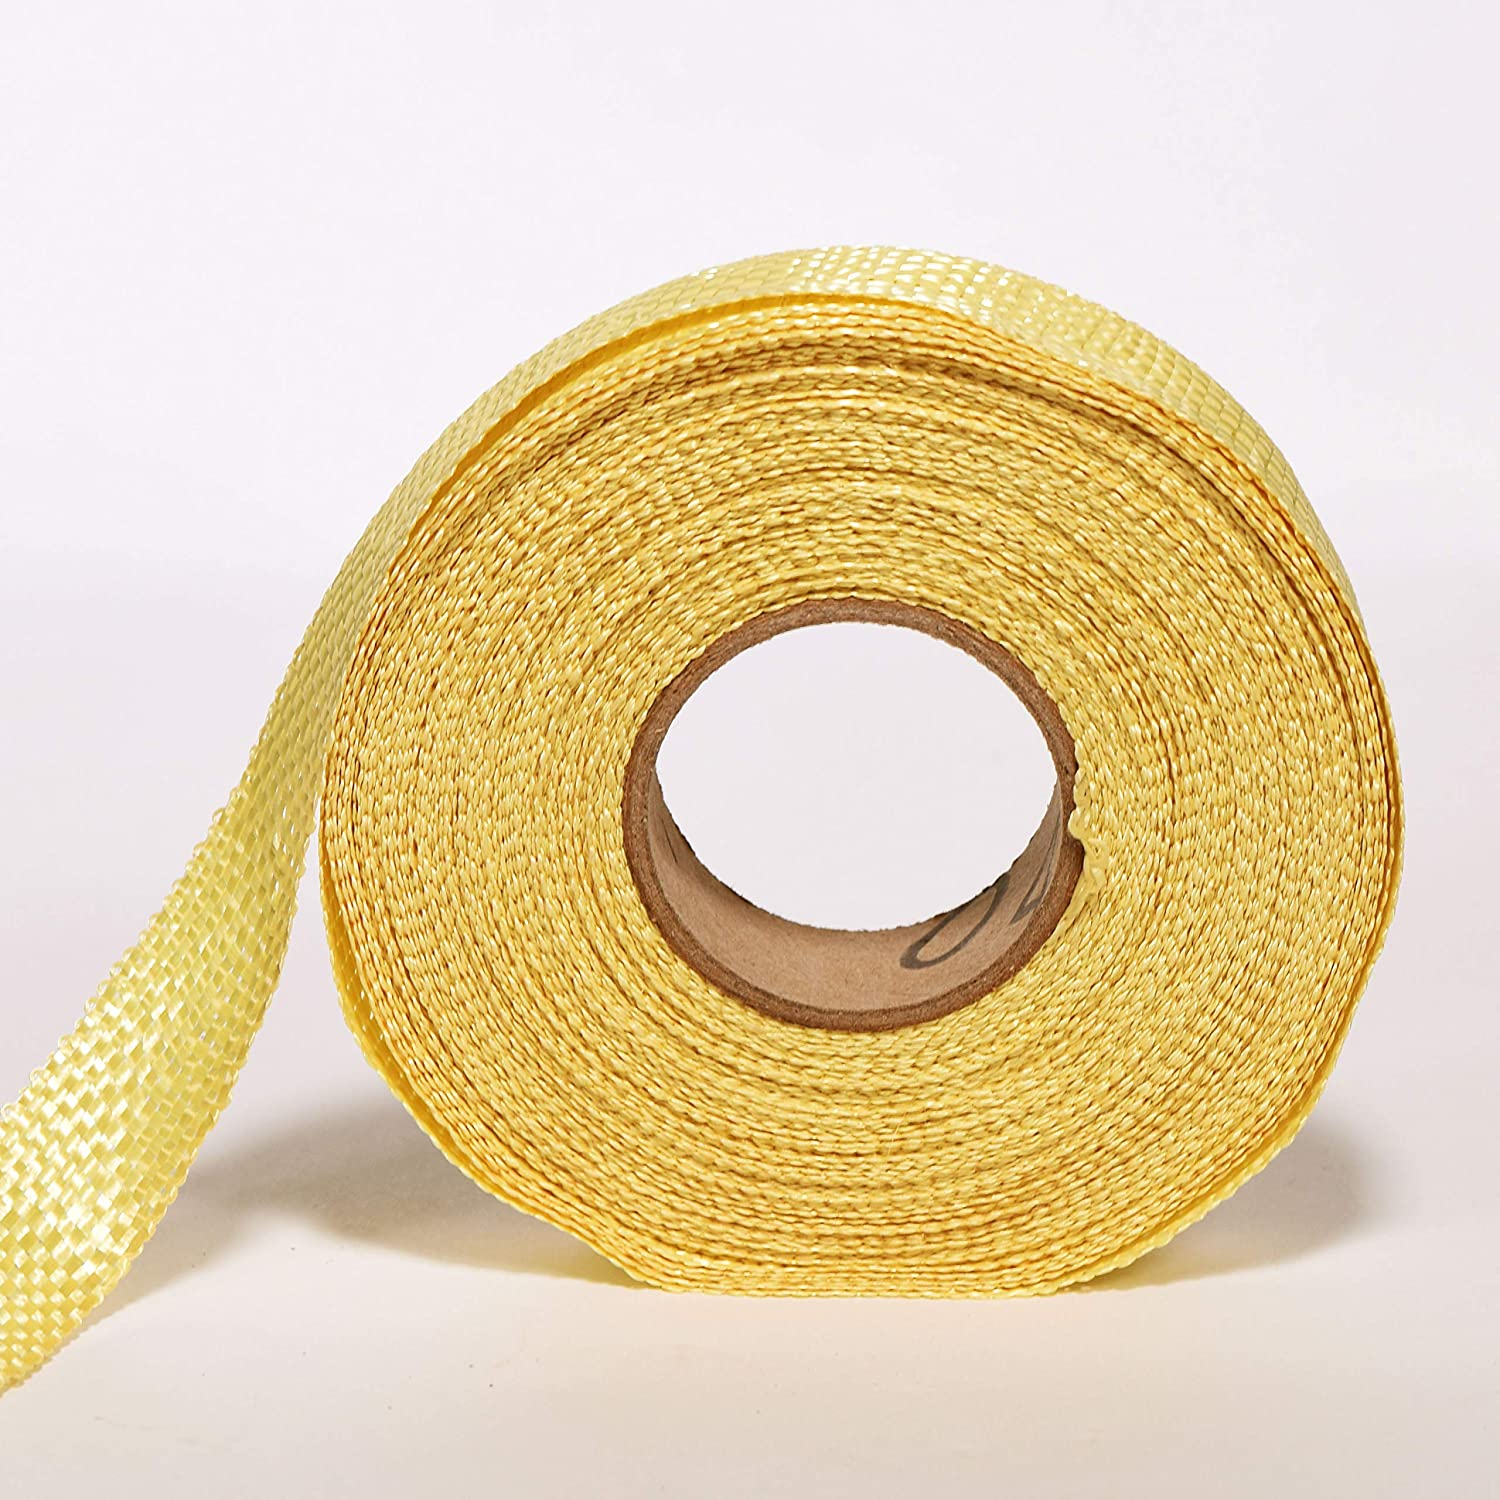 Kevlar Tape 5 oz 1' Wide by 50 Yards (2.54 cm x 4572 cm) Rayplex Ltd